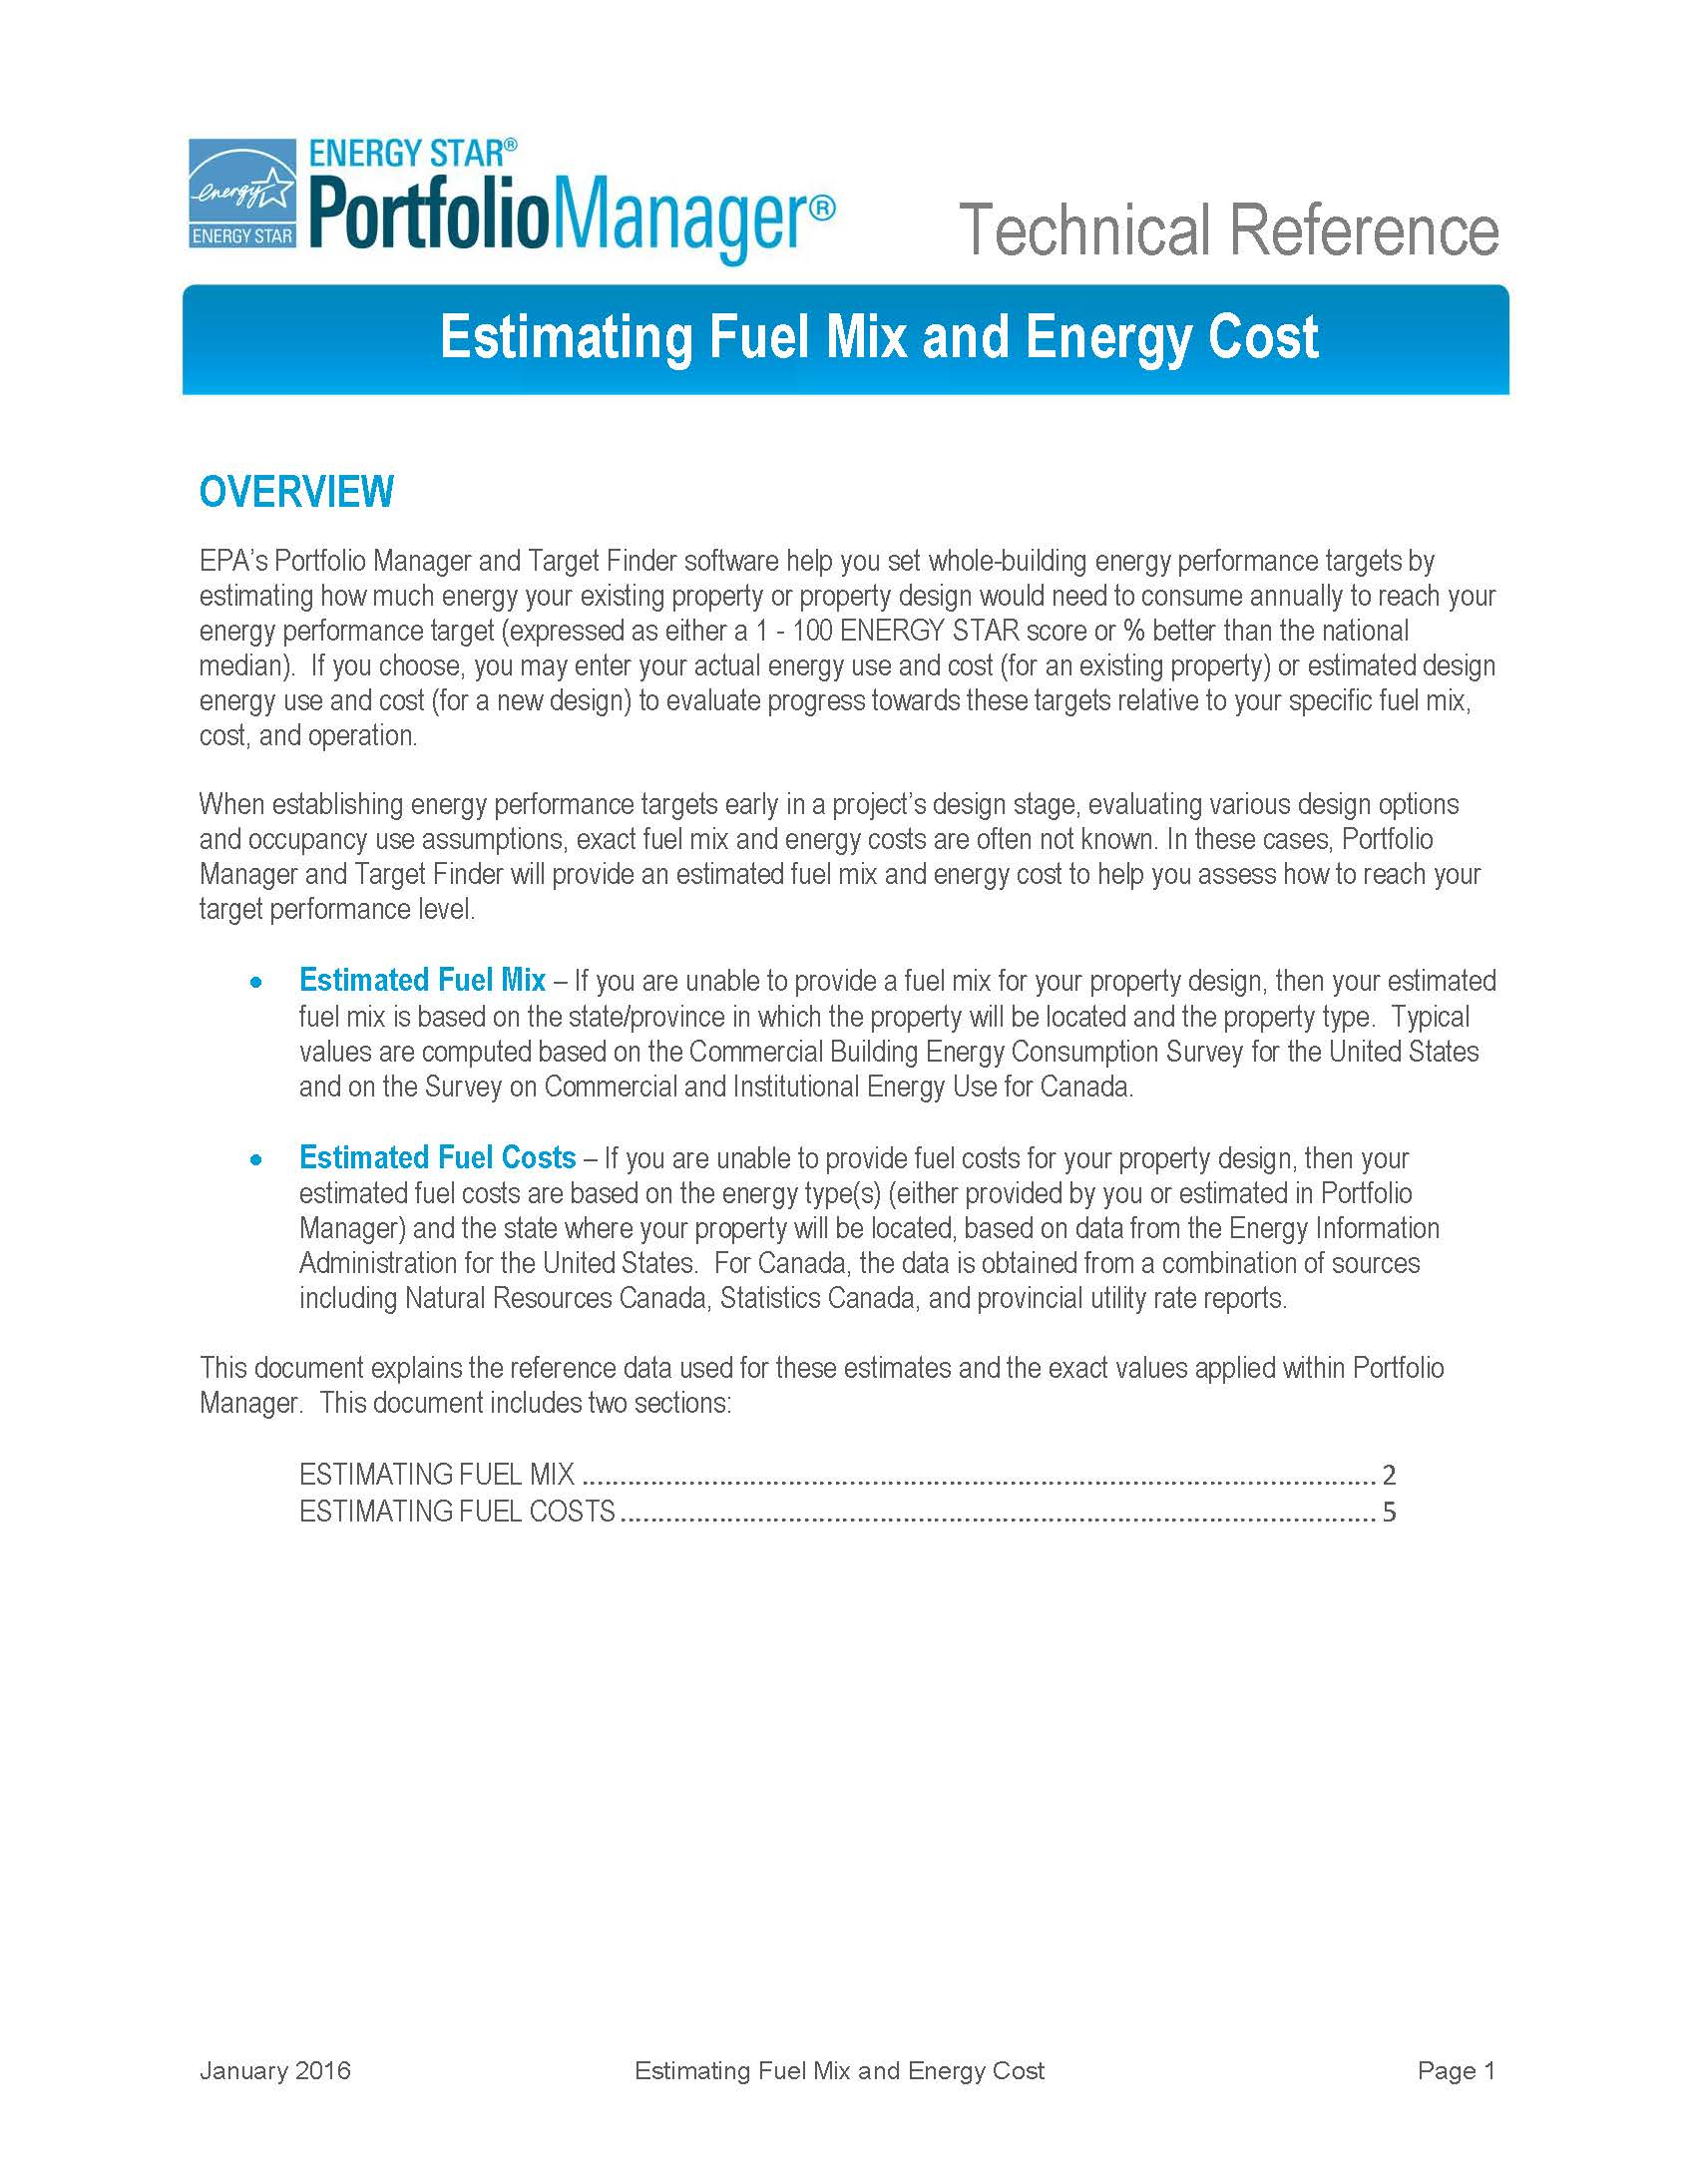 Portfolio Manager Technical Reference: Estimating Fuel Mix and Energy Cost - thumbnail